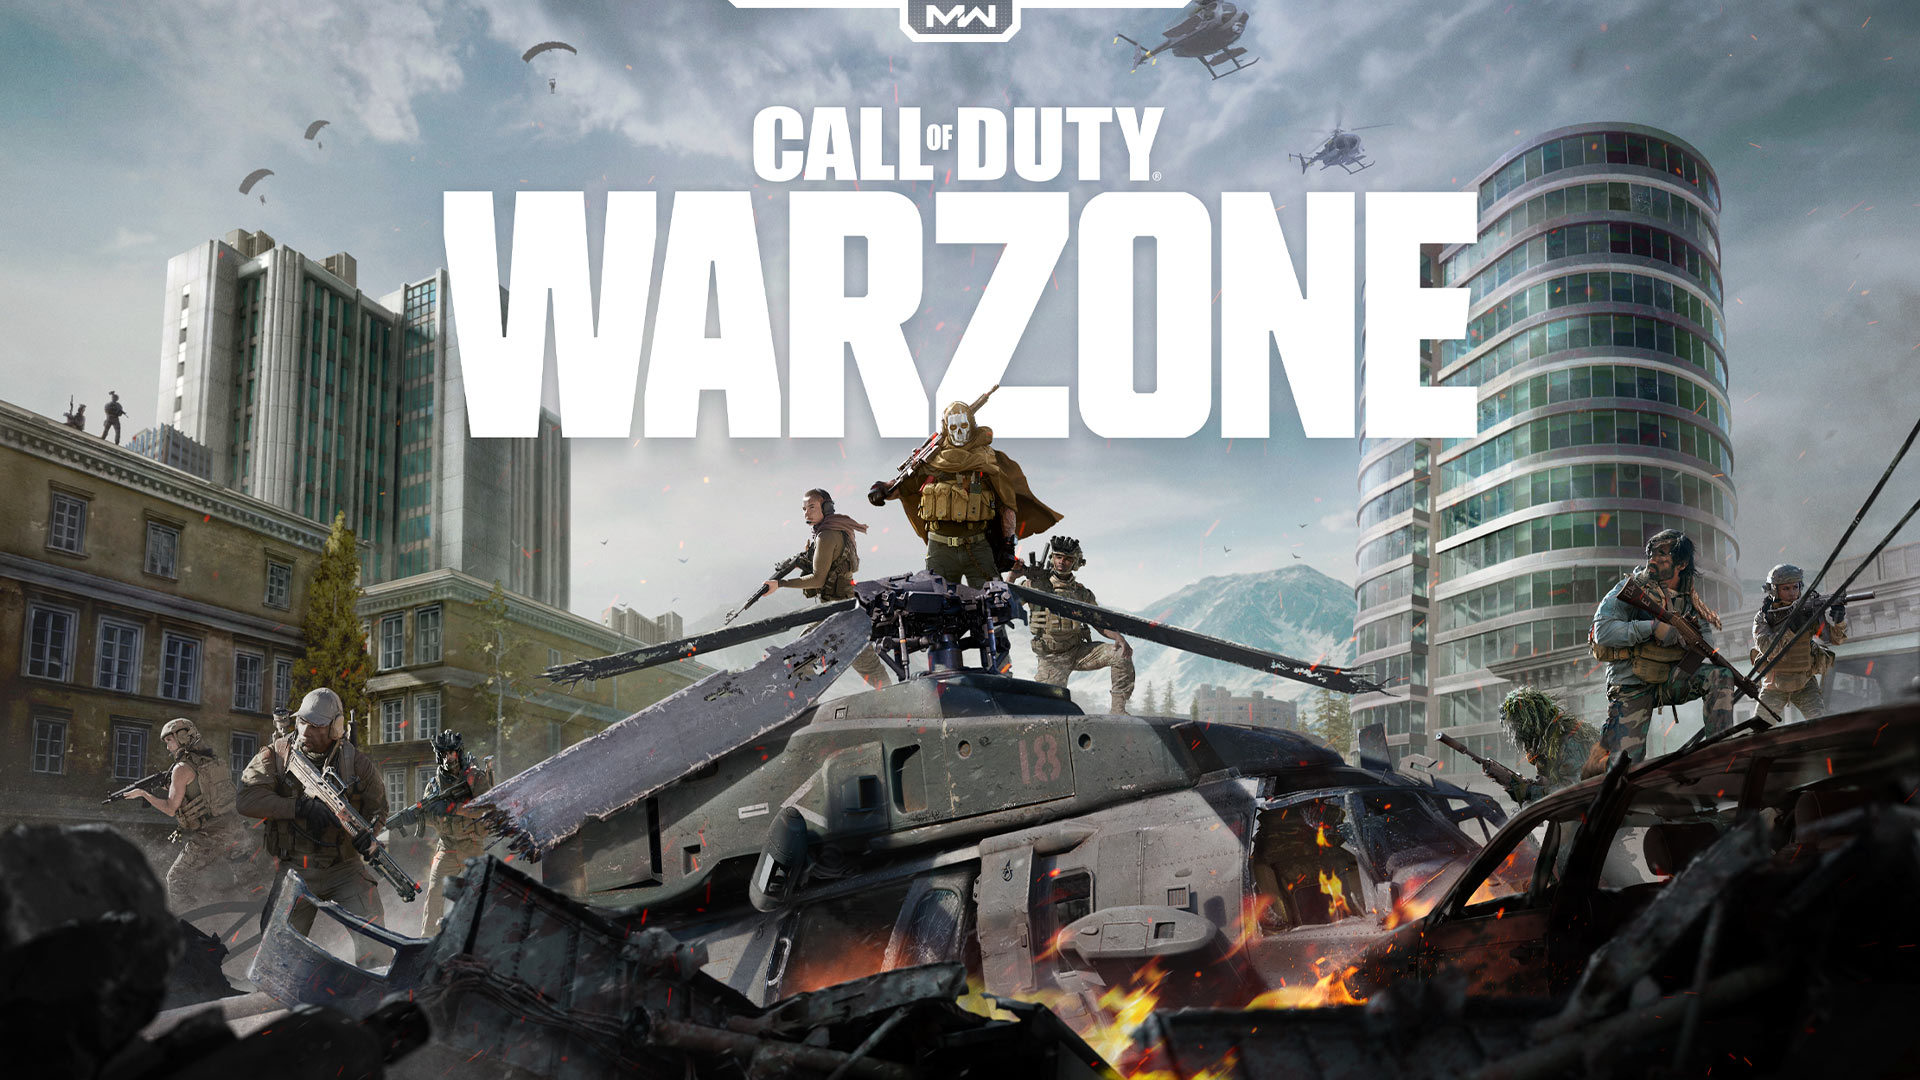 COD Players Beware! Malware Disguised as 'Call of Duty: Warzone' Cheats revealed - Download COD Players Beware! Malware Disguised as 'Call of Duty: Warzone' Cheats revealed for FREE - Free Cheats for Games